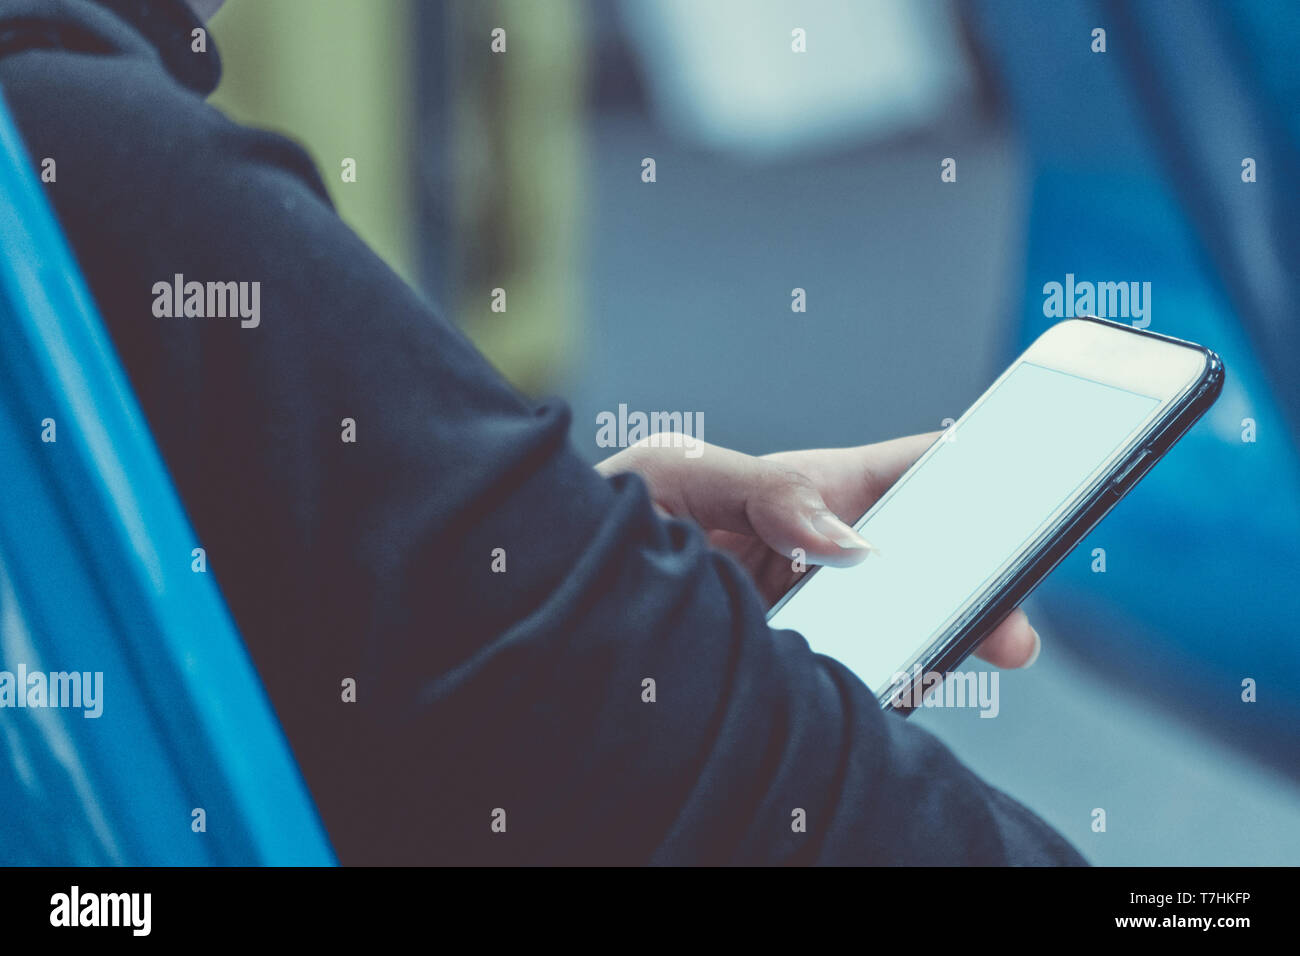 woman holding and using mobile smartphone to connect airport wifi internet to searching for information while waiting for flight at the airport termin - Stock Image